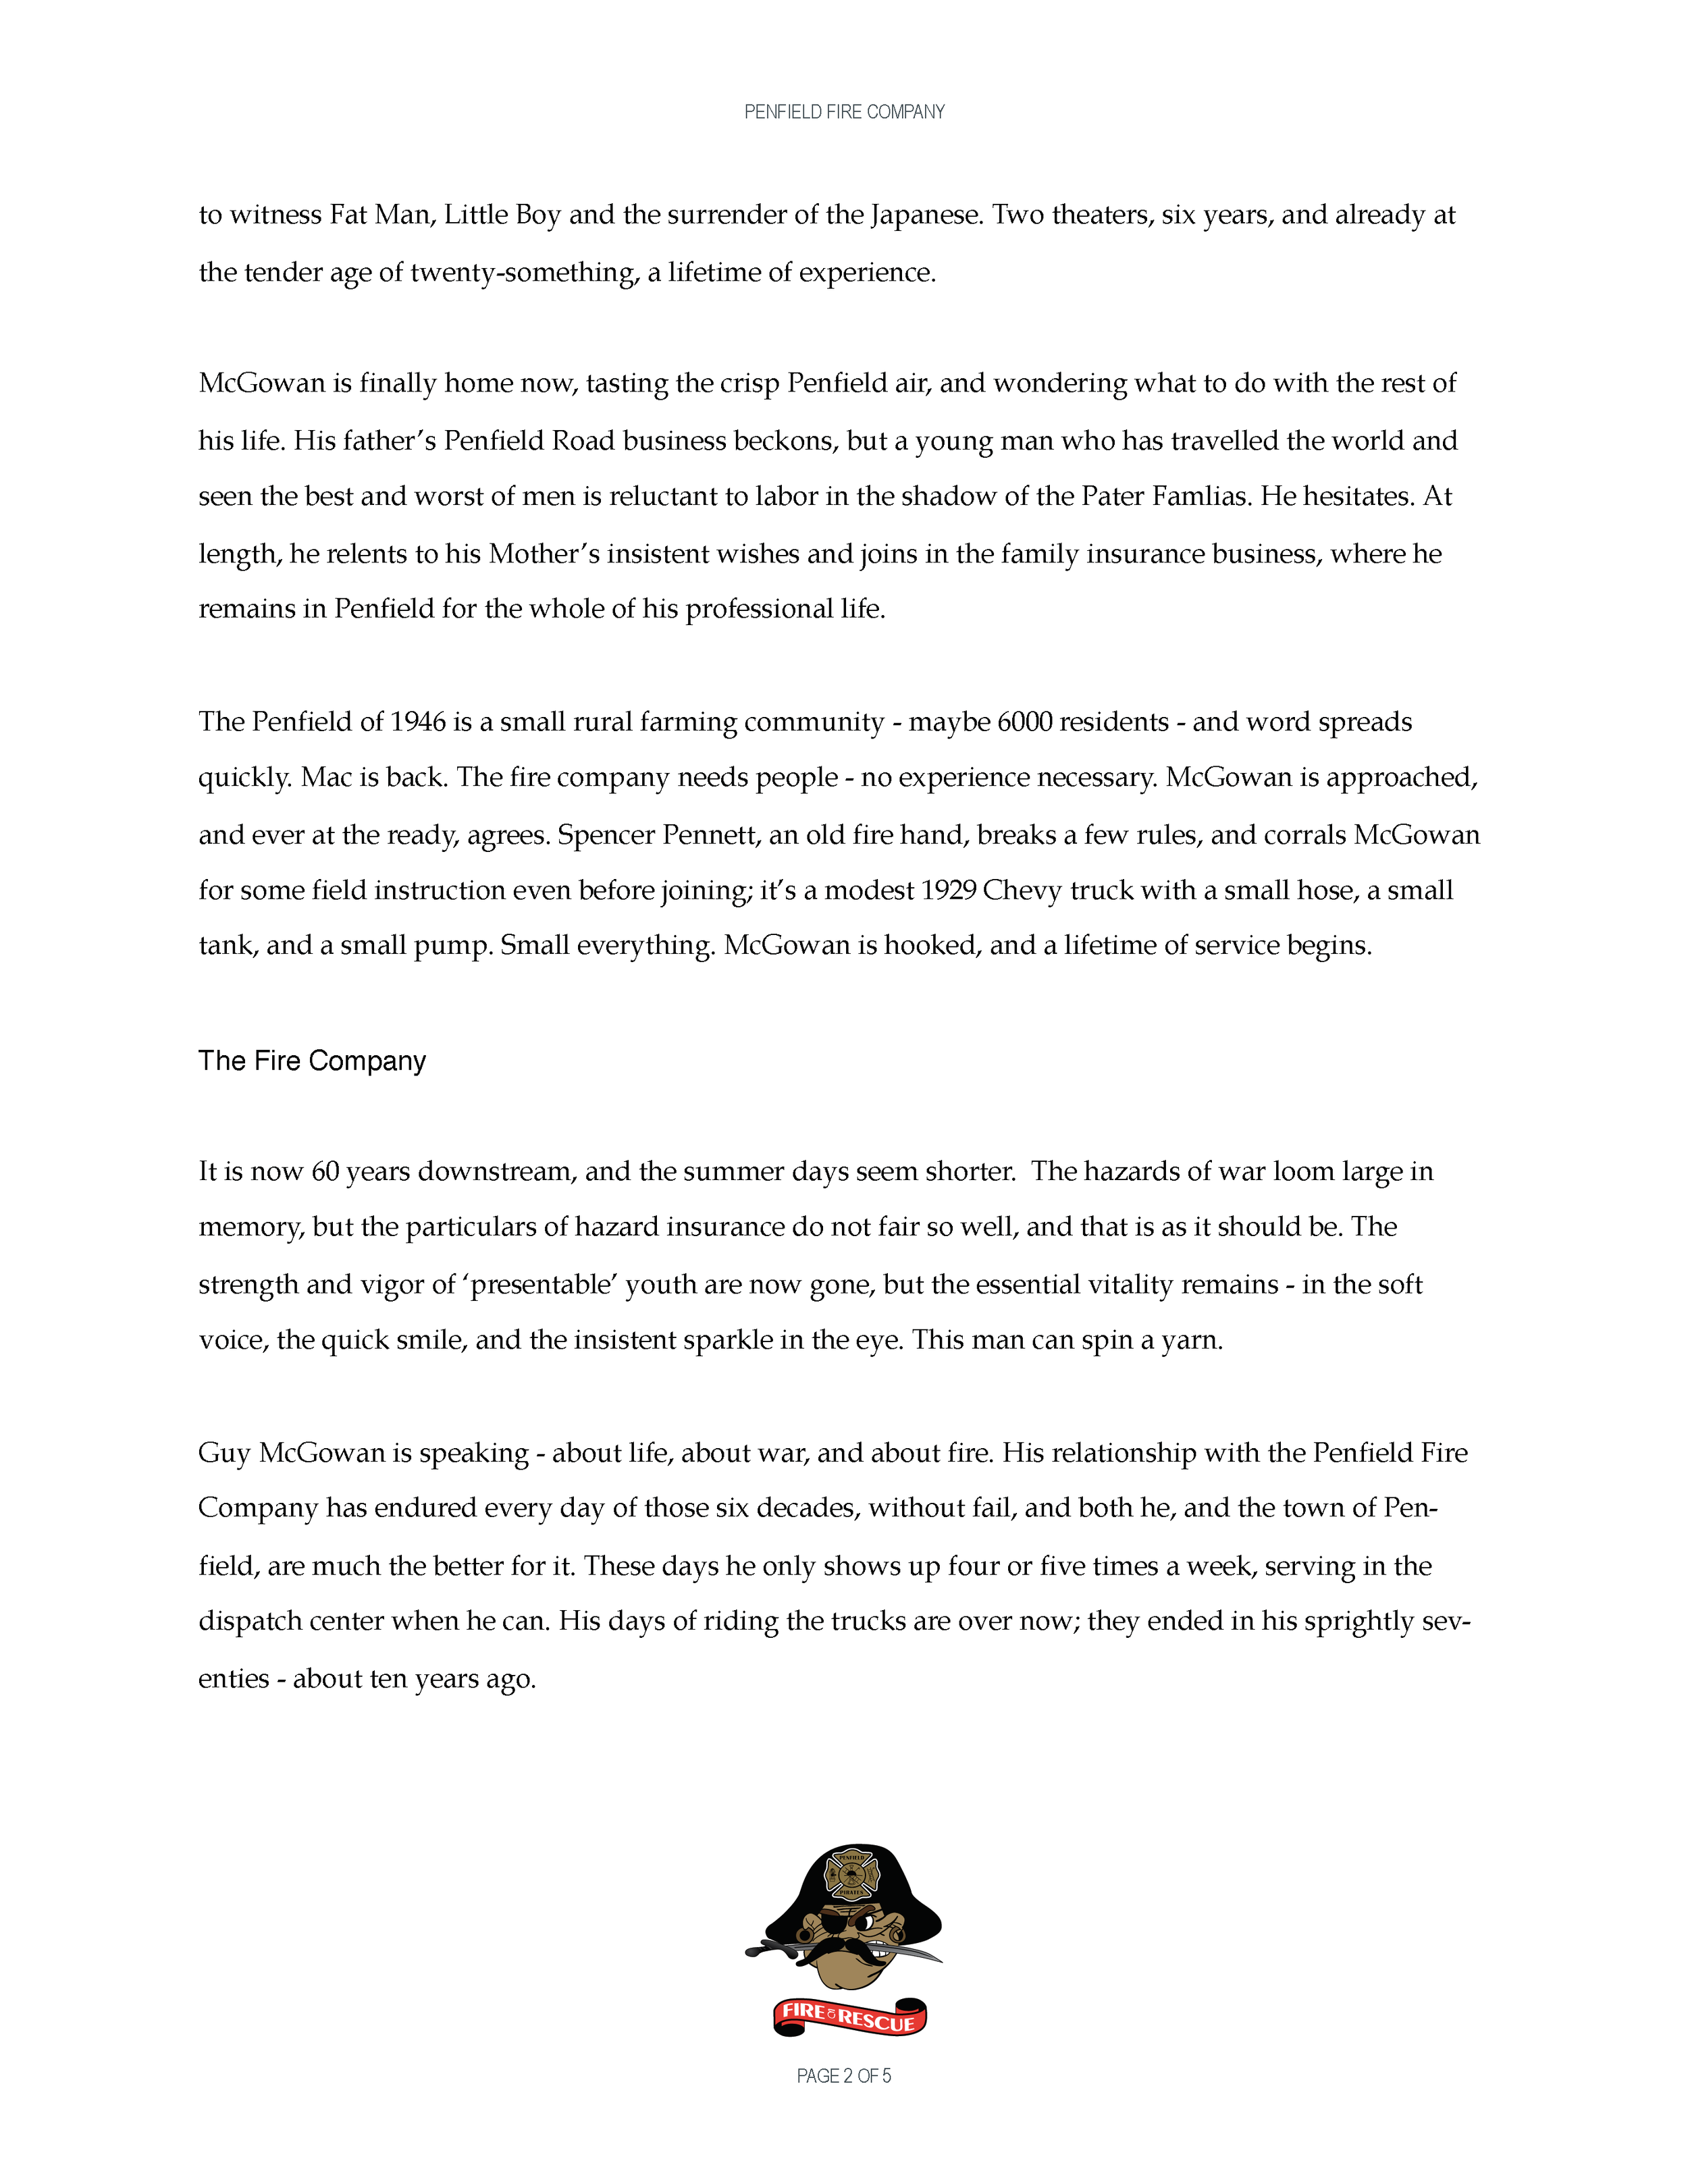 09-08-05 Guy McGowan Interview_Page_2.png